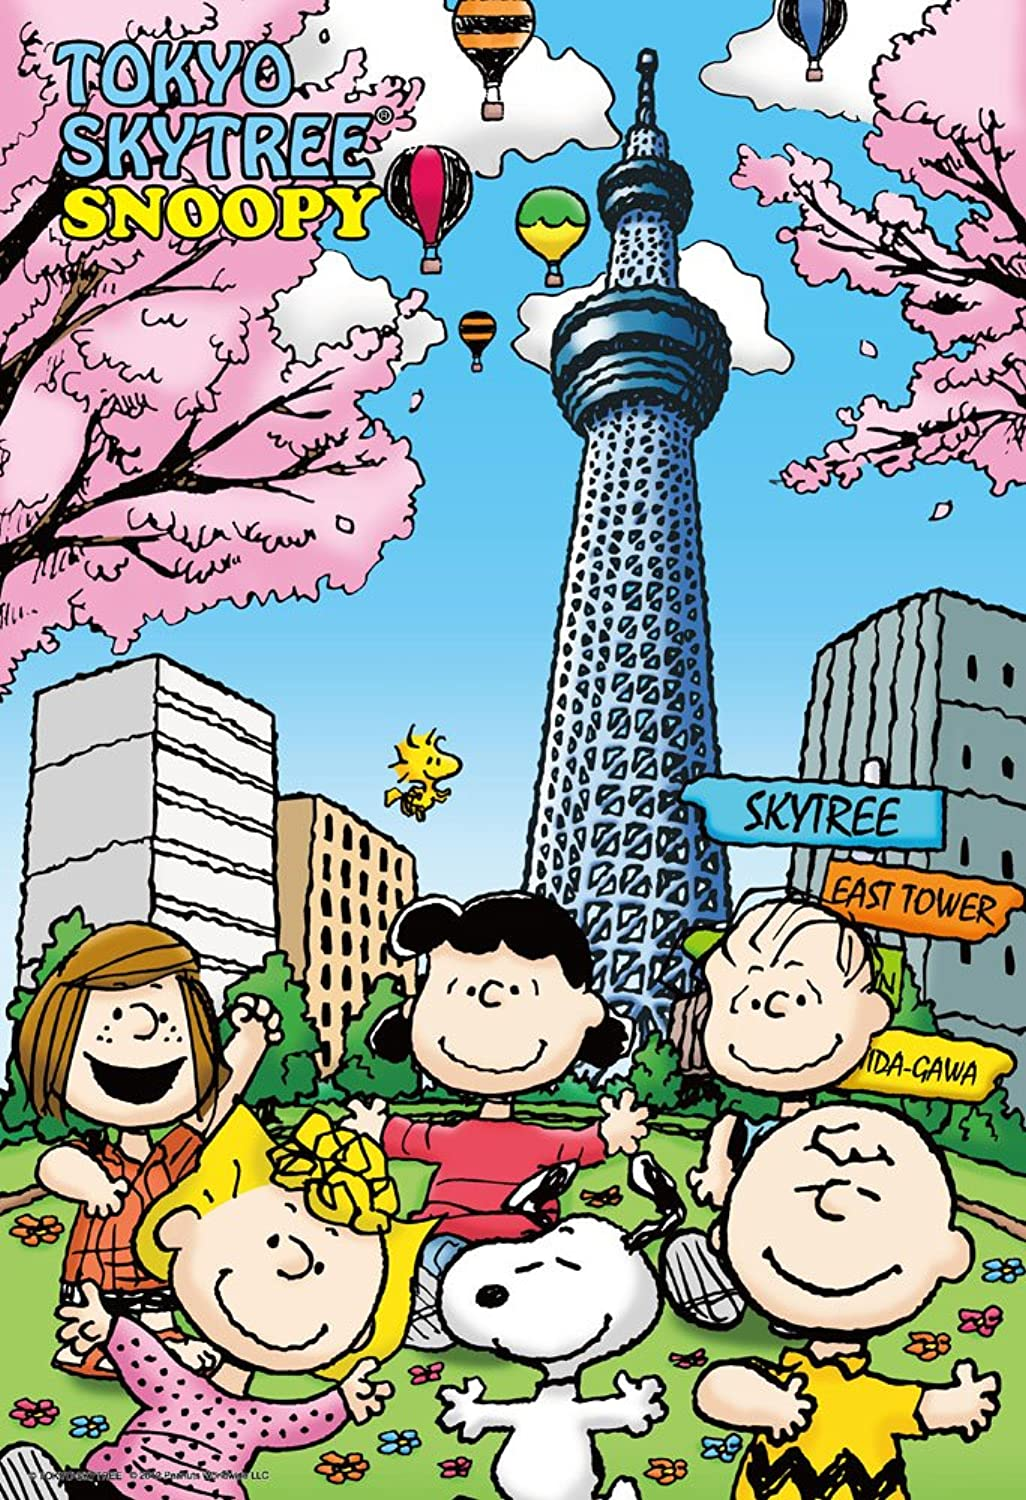 Tokyo Sky Tree 300 Piece Snoopy Snoopy (R) Holiday 43-308 (japan import)